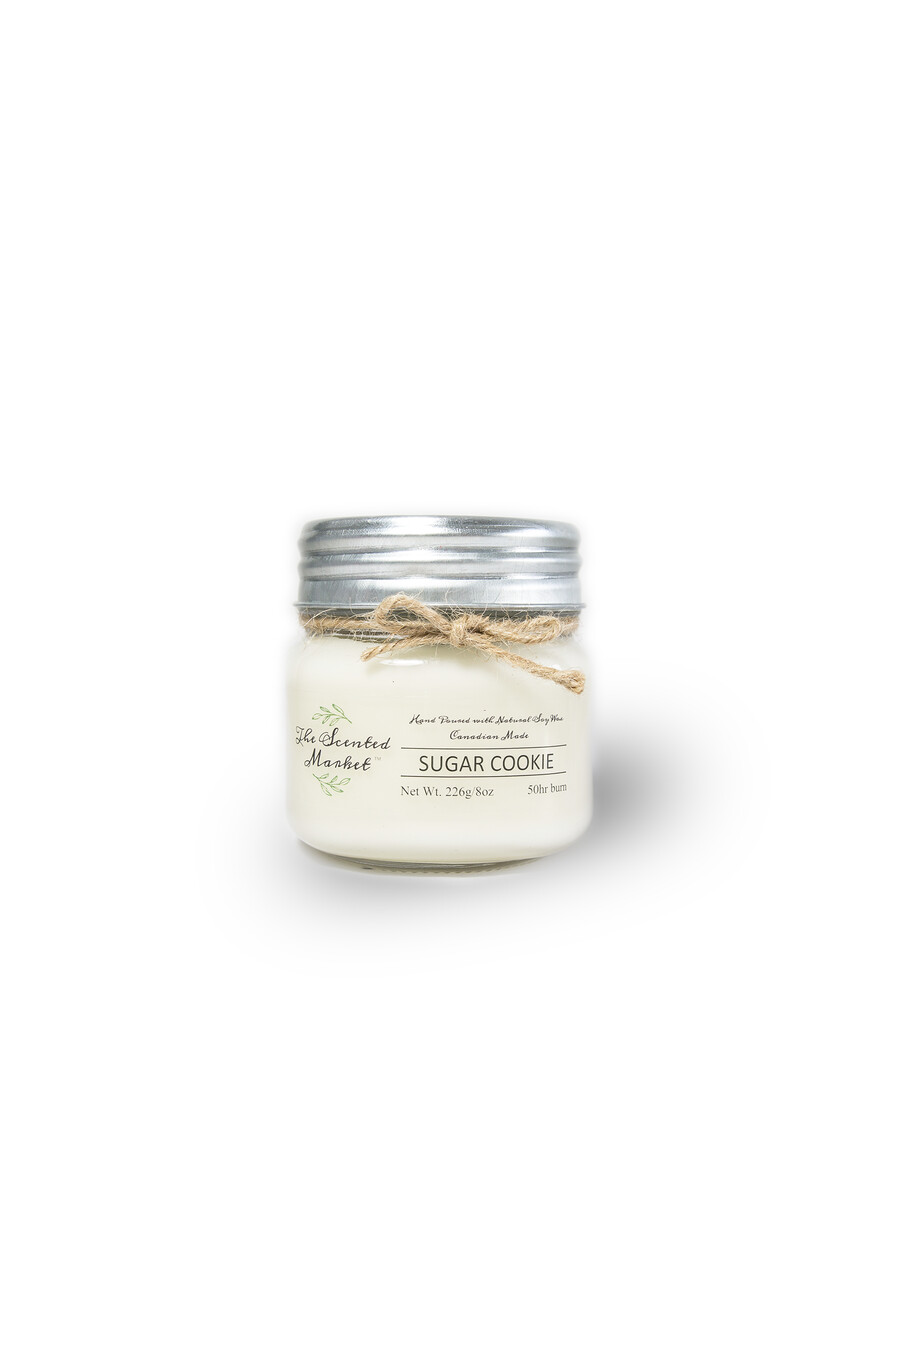 The Scented Market - Sugar Cookie Soy Wax Candle 8oz